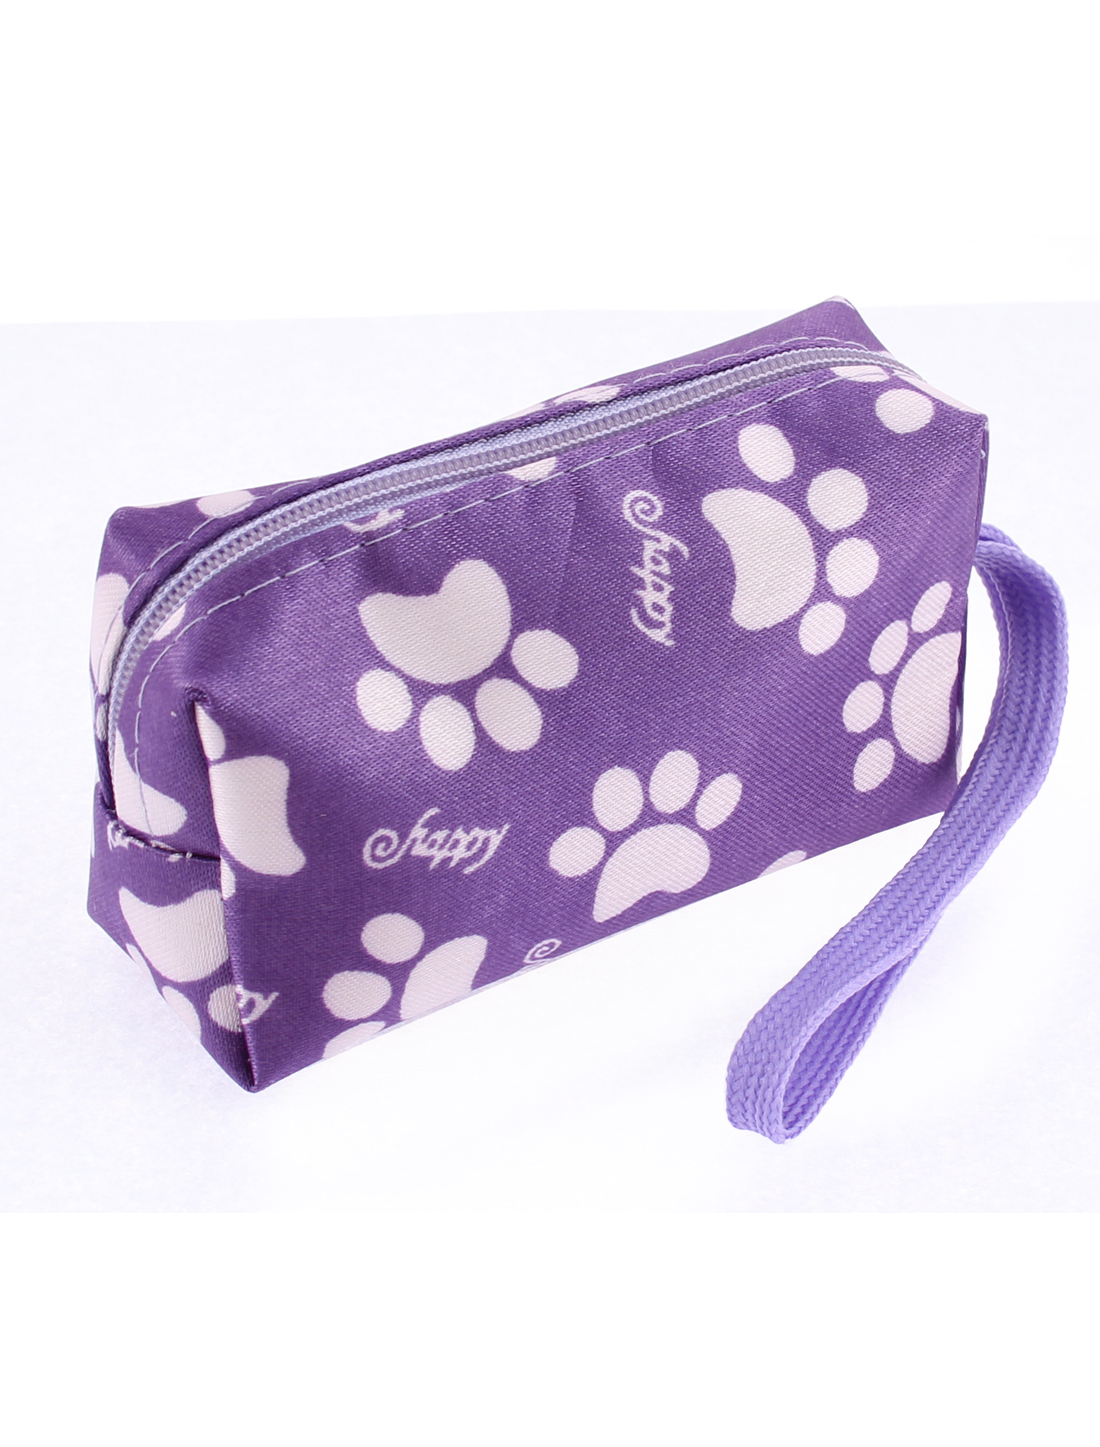 Ladies Zipper Closure White Footprints Pattern Cash Coin Key Credit Card Purple Purse Wallet